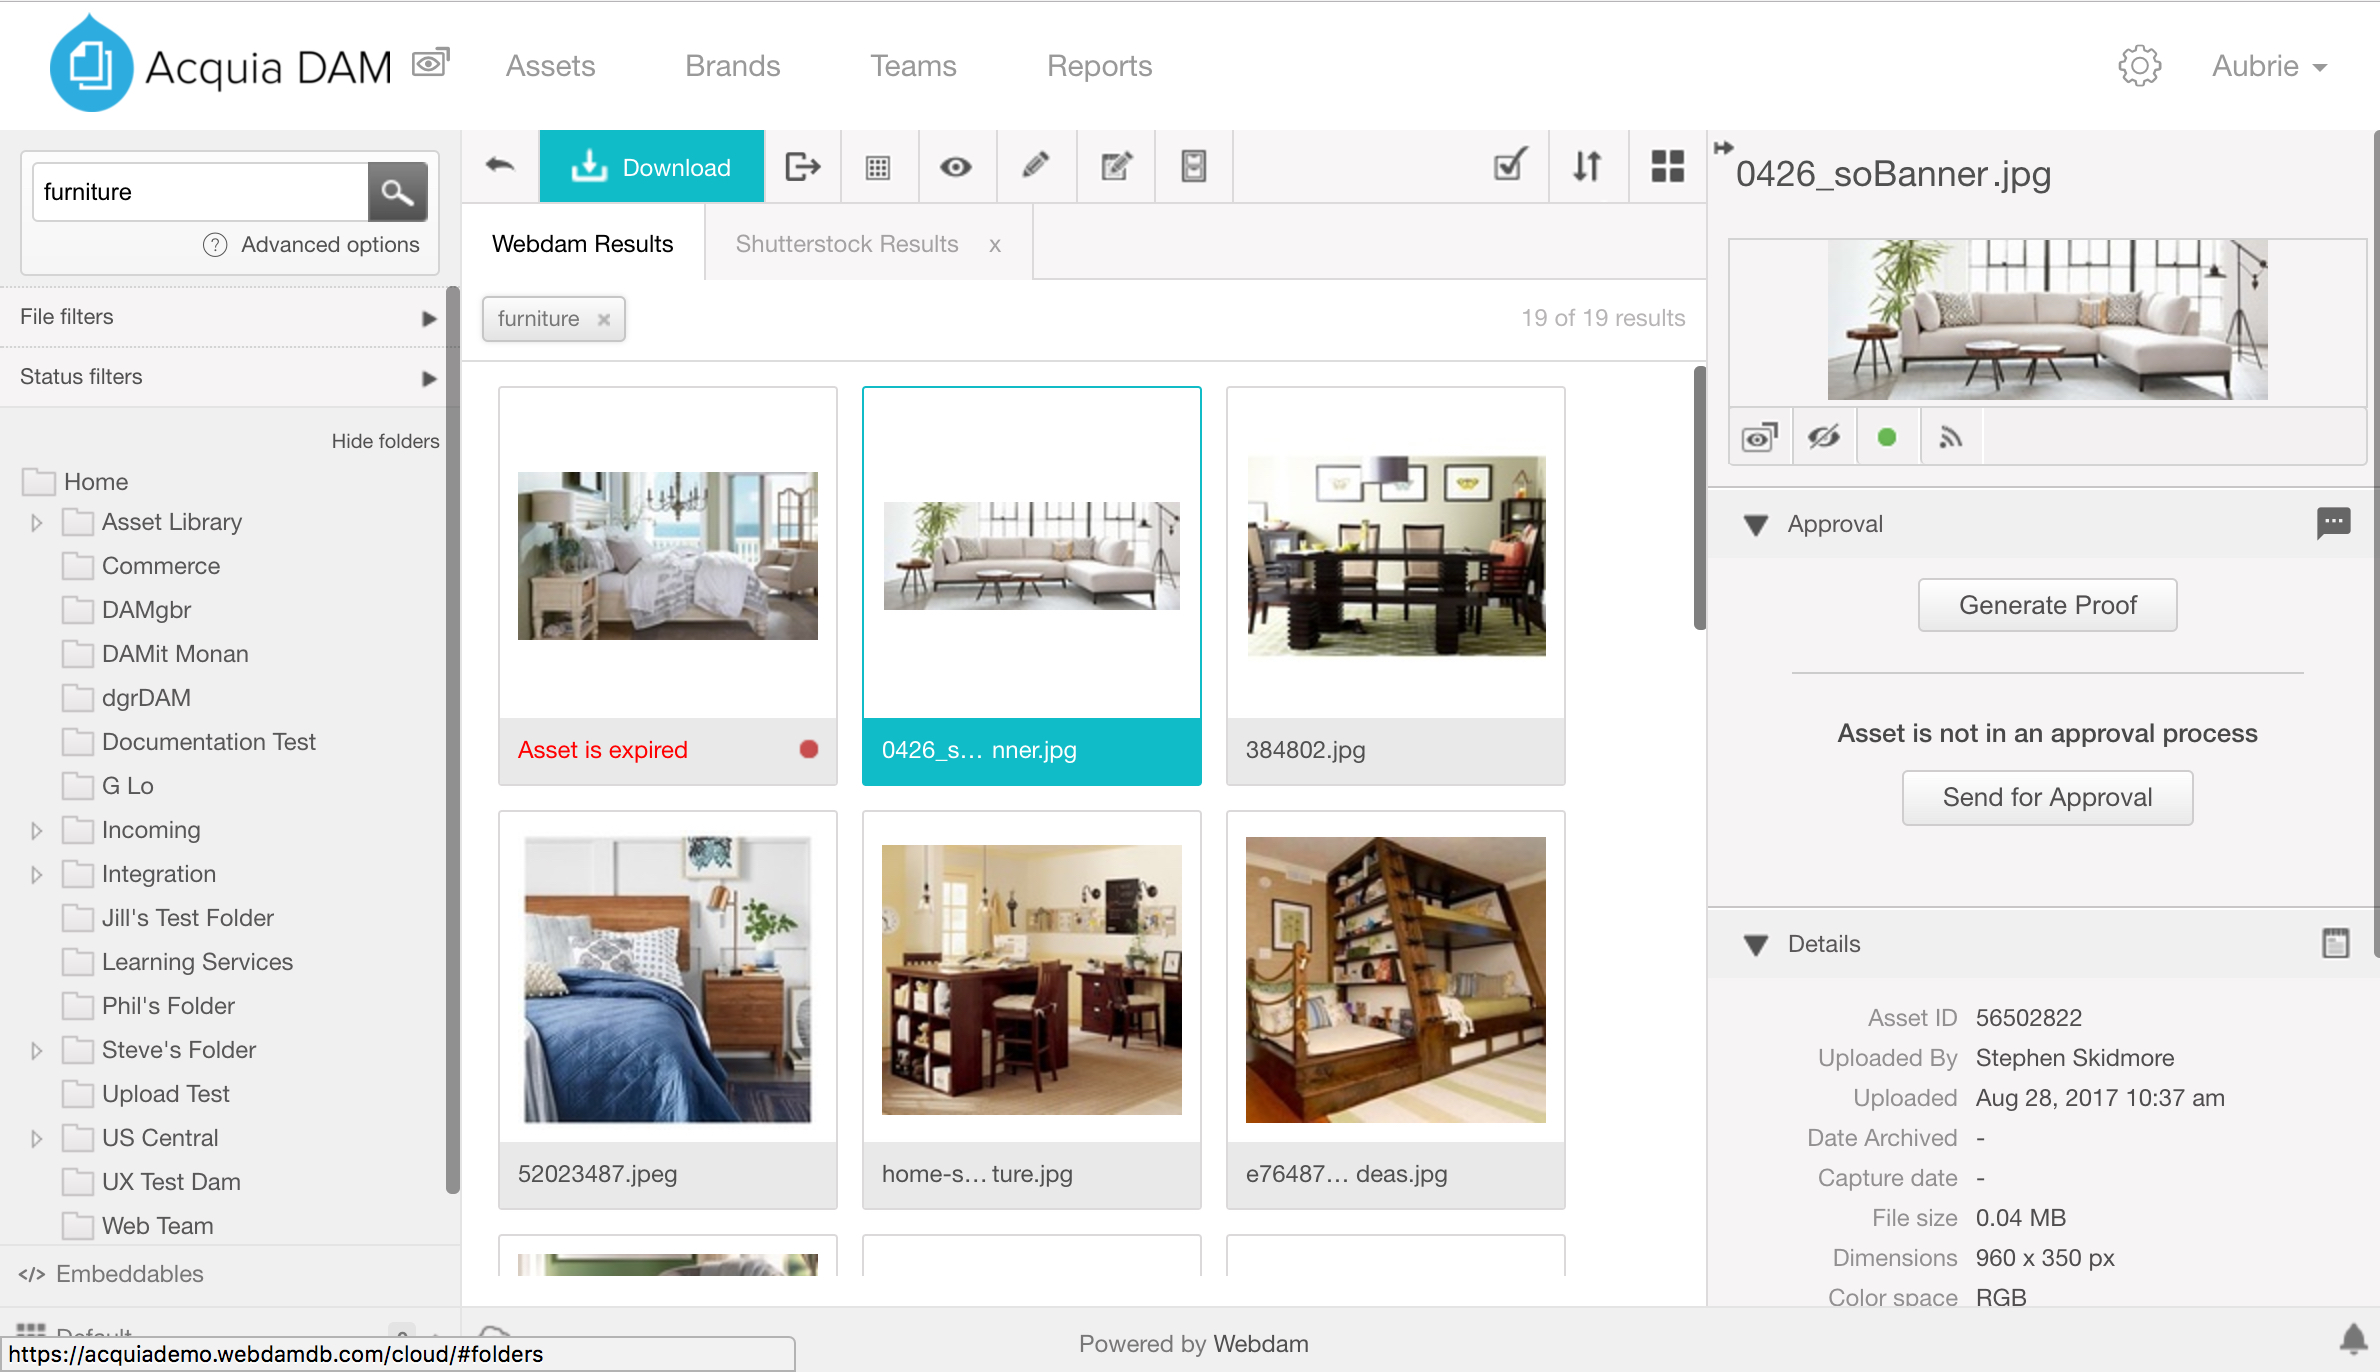 A screenshot of Acquia's Digital Asset Management solution